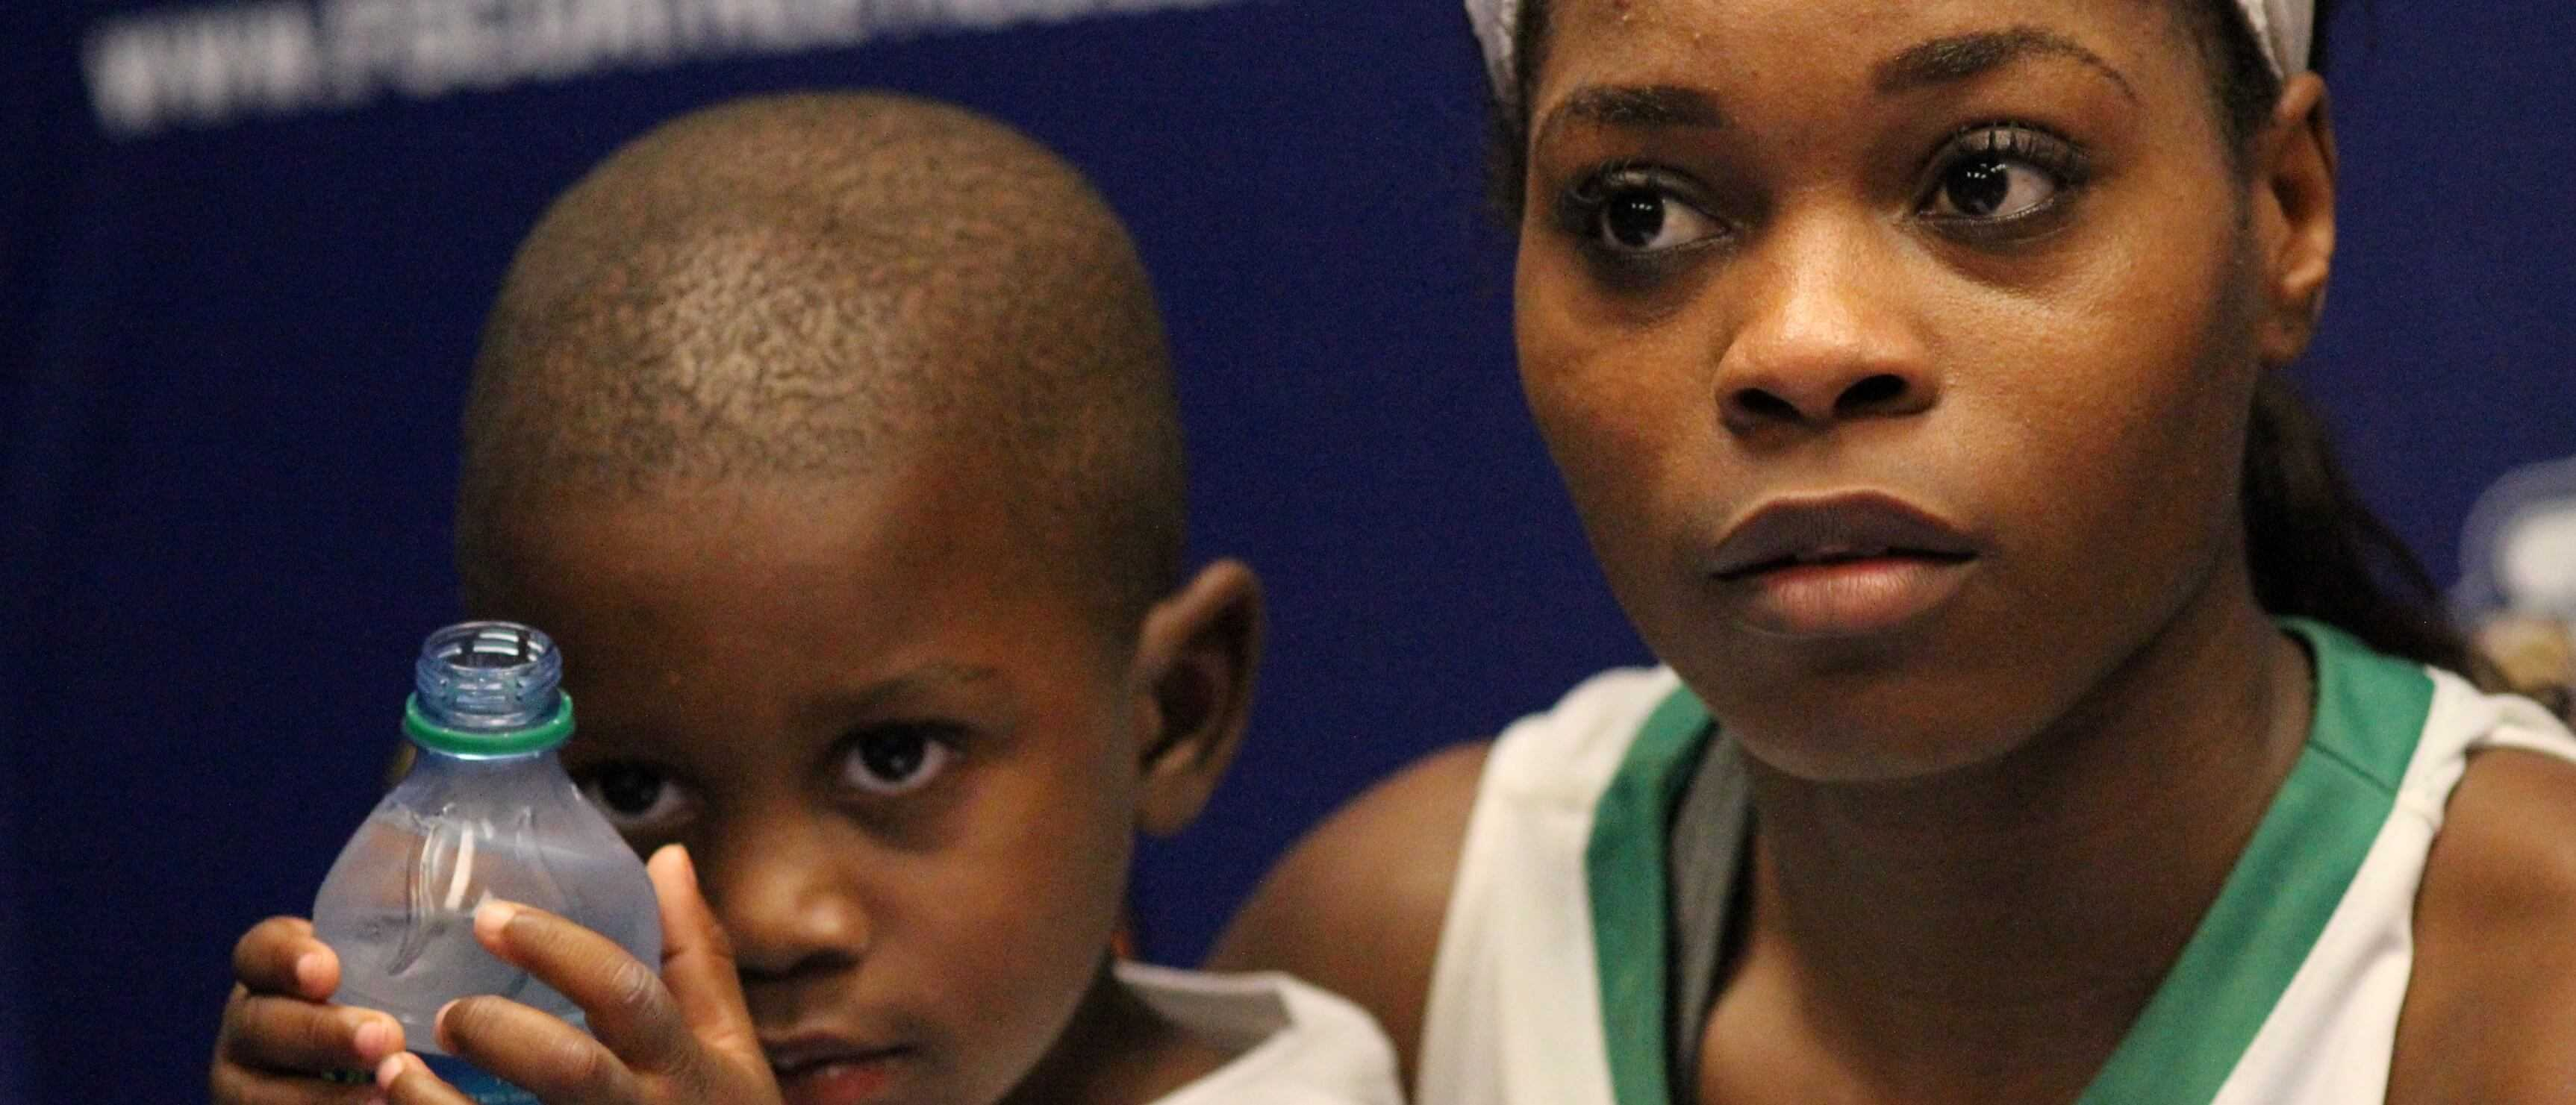 Love & Basketball: Kaneisha Atwater keeps striving for her son